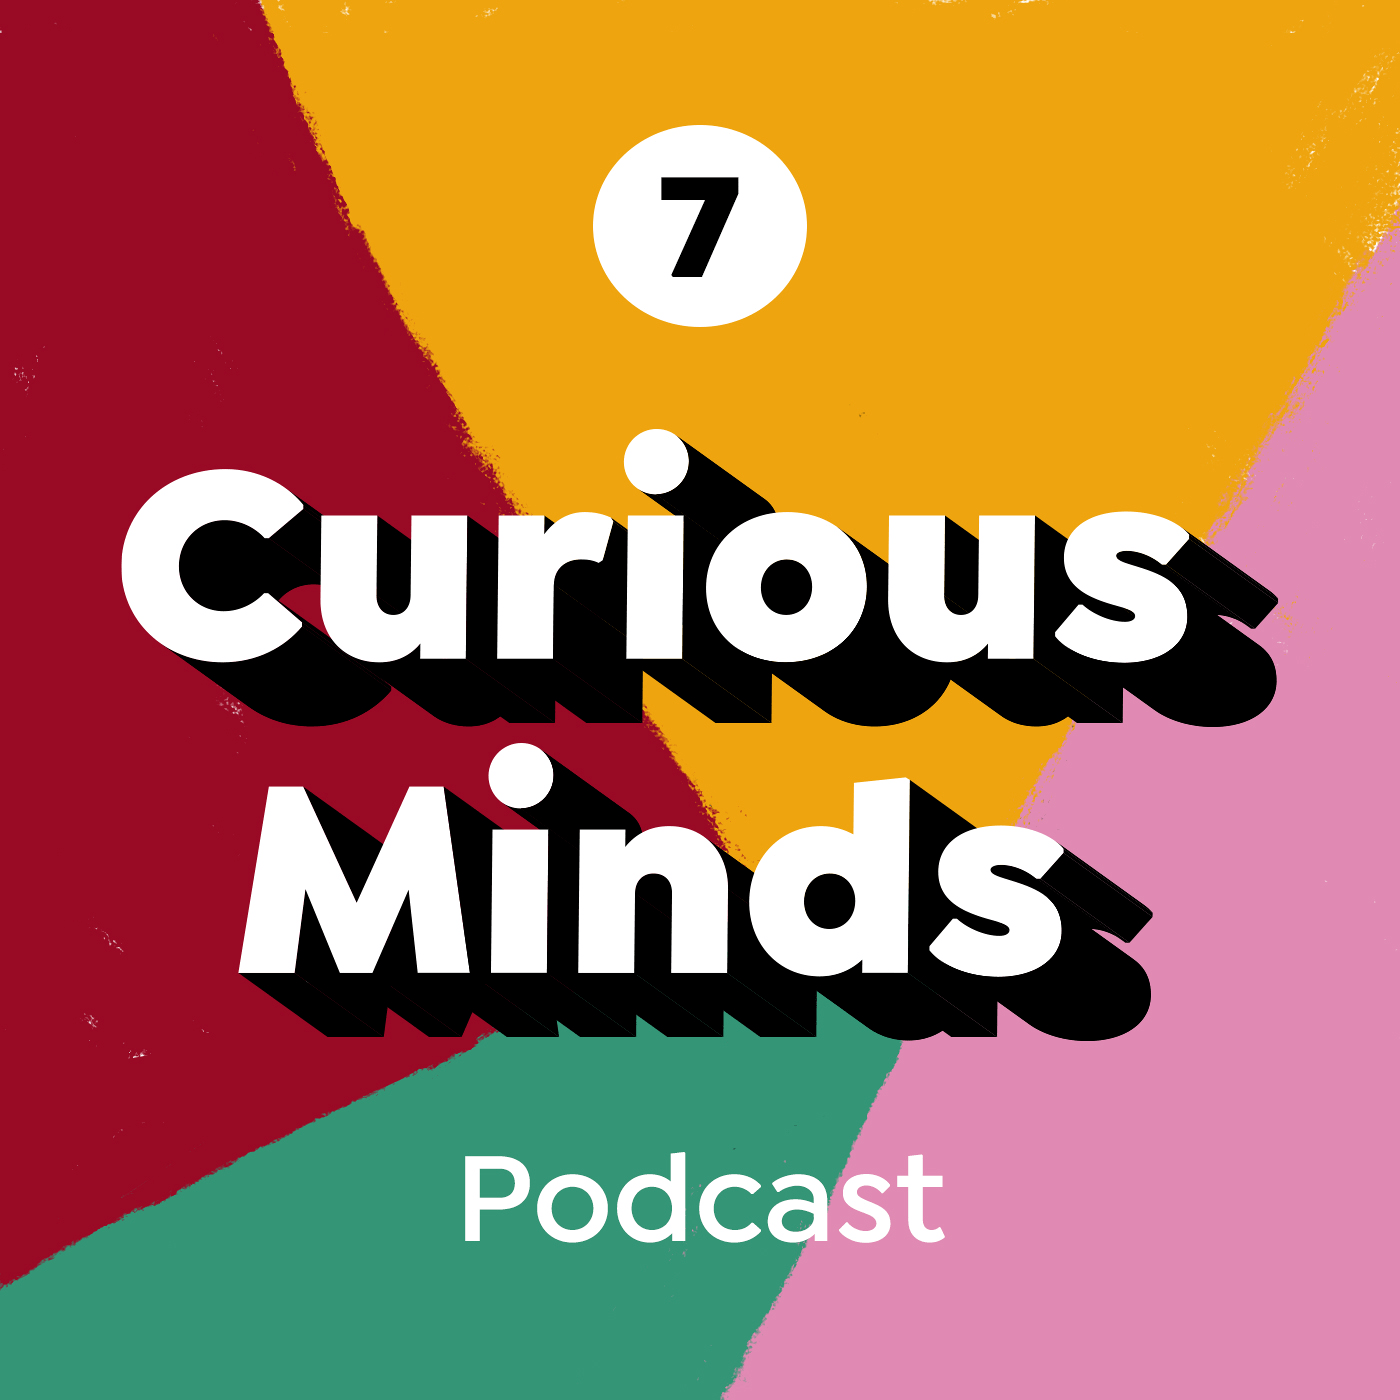 Curious Minds Podcast: Why Do We Keep Designing Furniture?